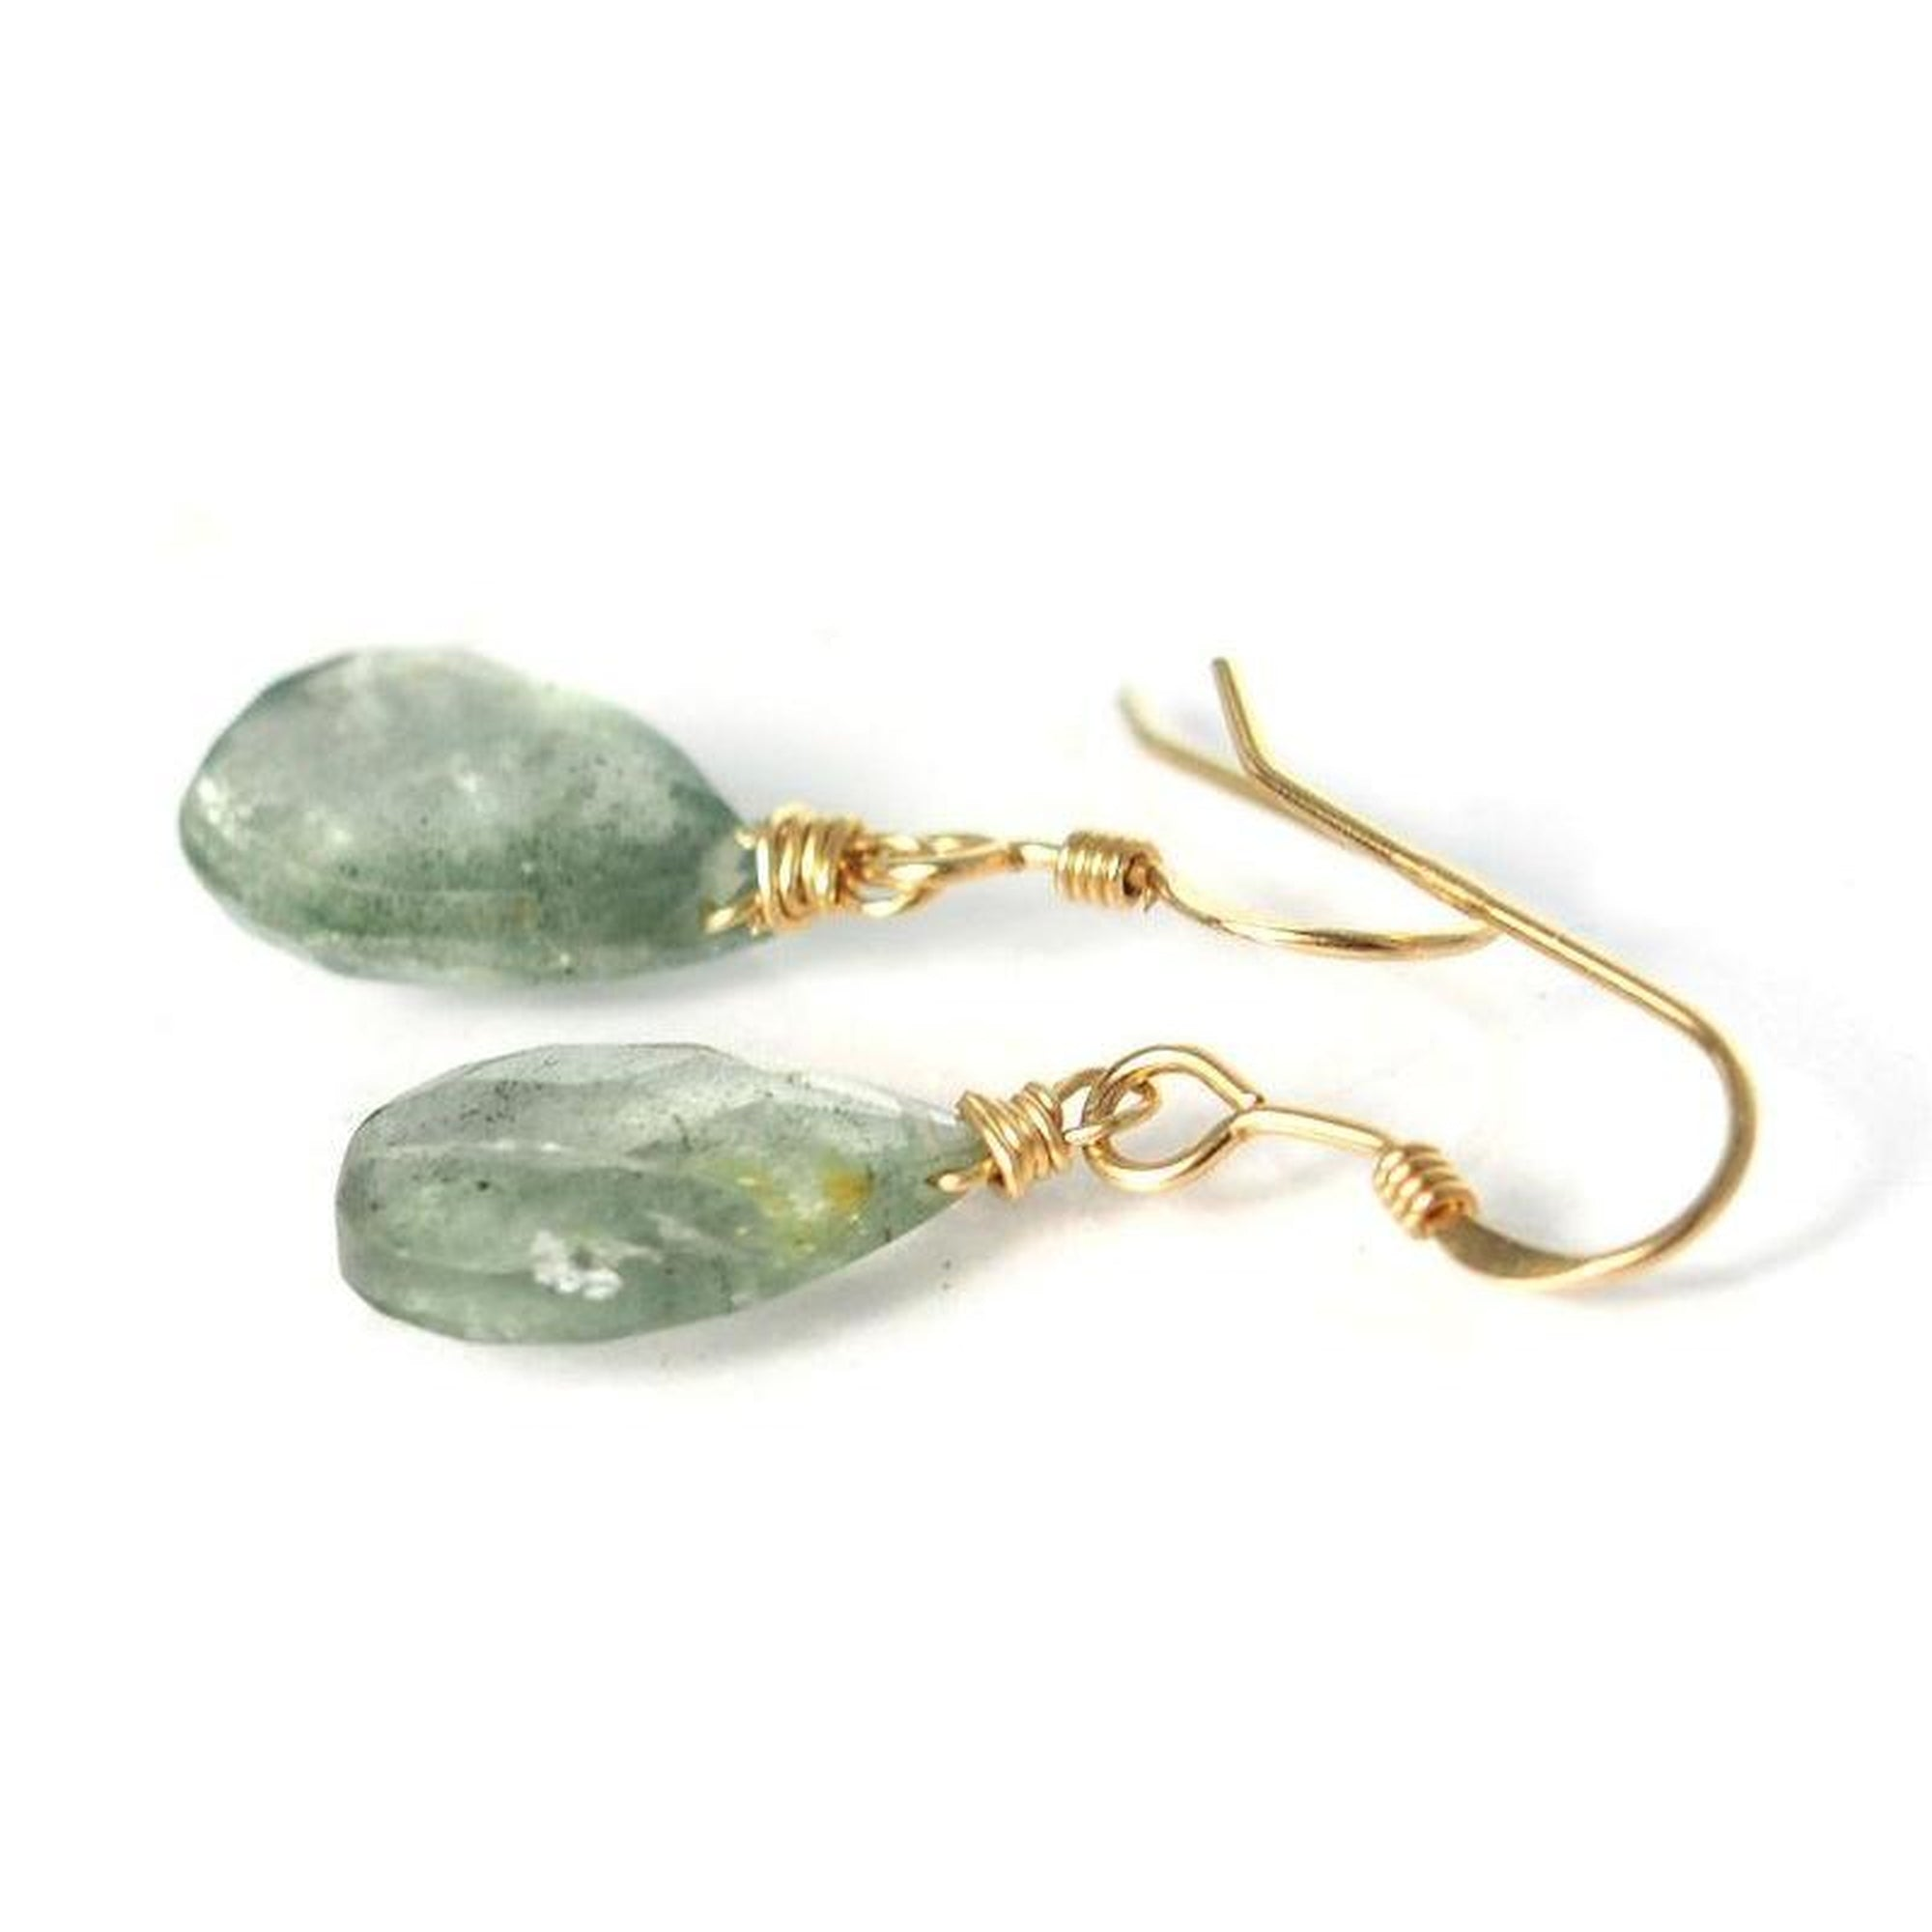 Aquamarine Earrings with Gold Filled Earwires - Beads of Paradise